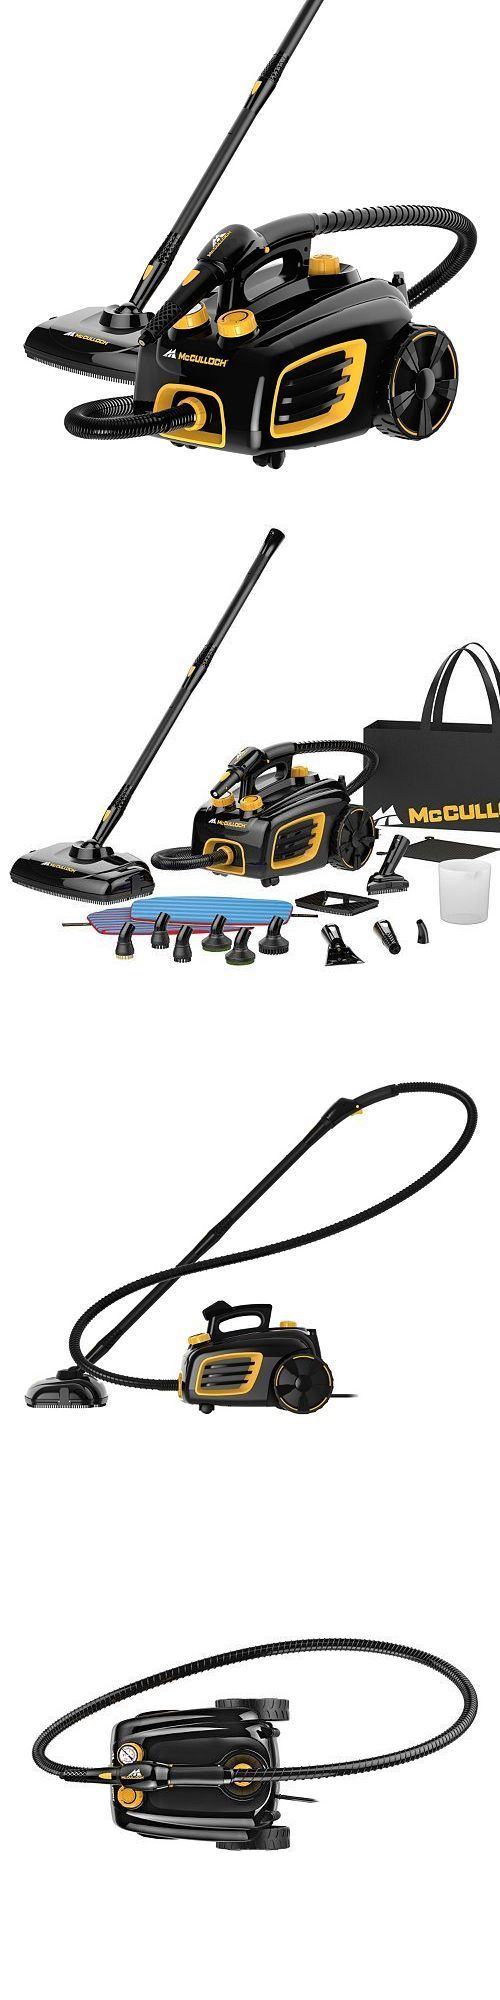 Carpet Steamers 79656: Mcculloch Mc1375 Canister Steam Cleaner (Free Ship ...) -> BUY IT NOW ONLY: $120 on eBay!